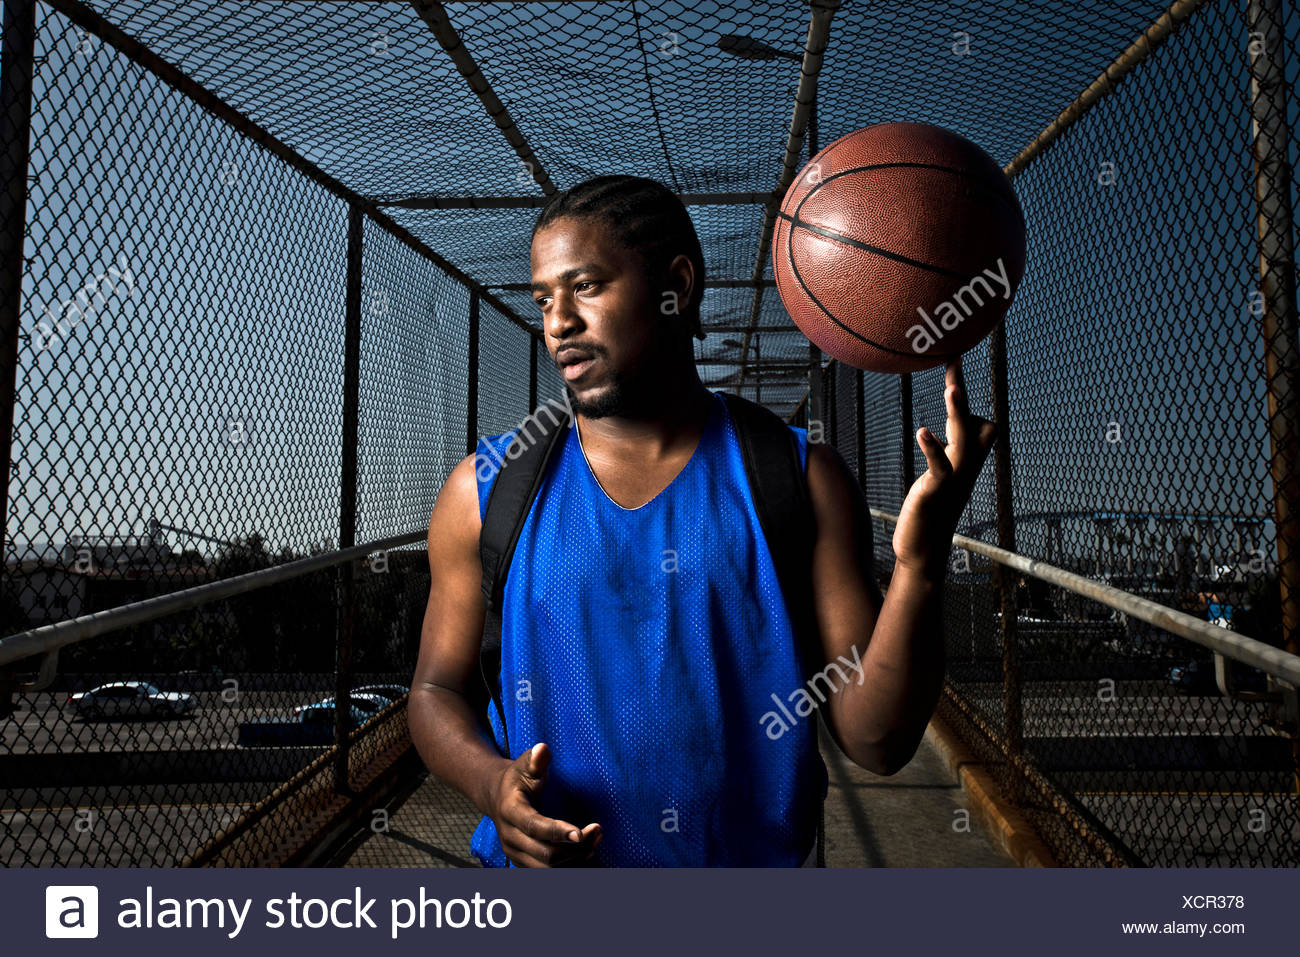 An athletic male spins a basketball on his finger. - Stock Image